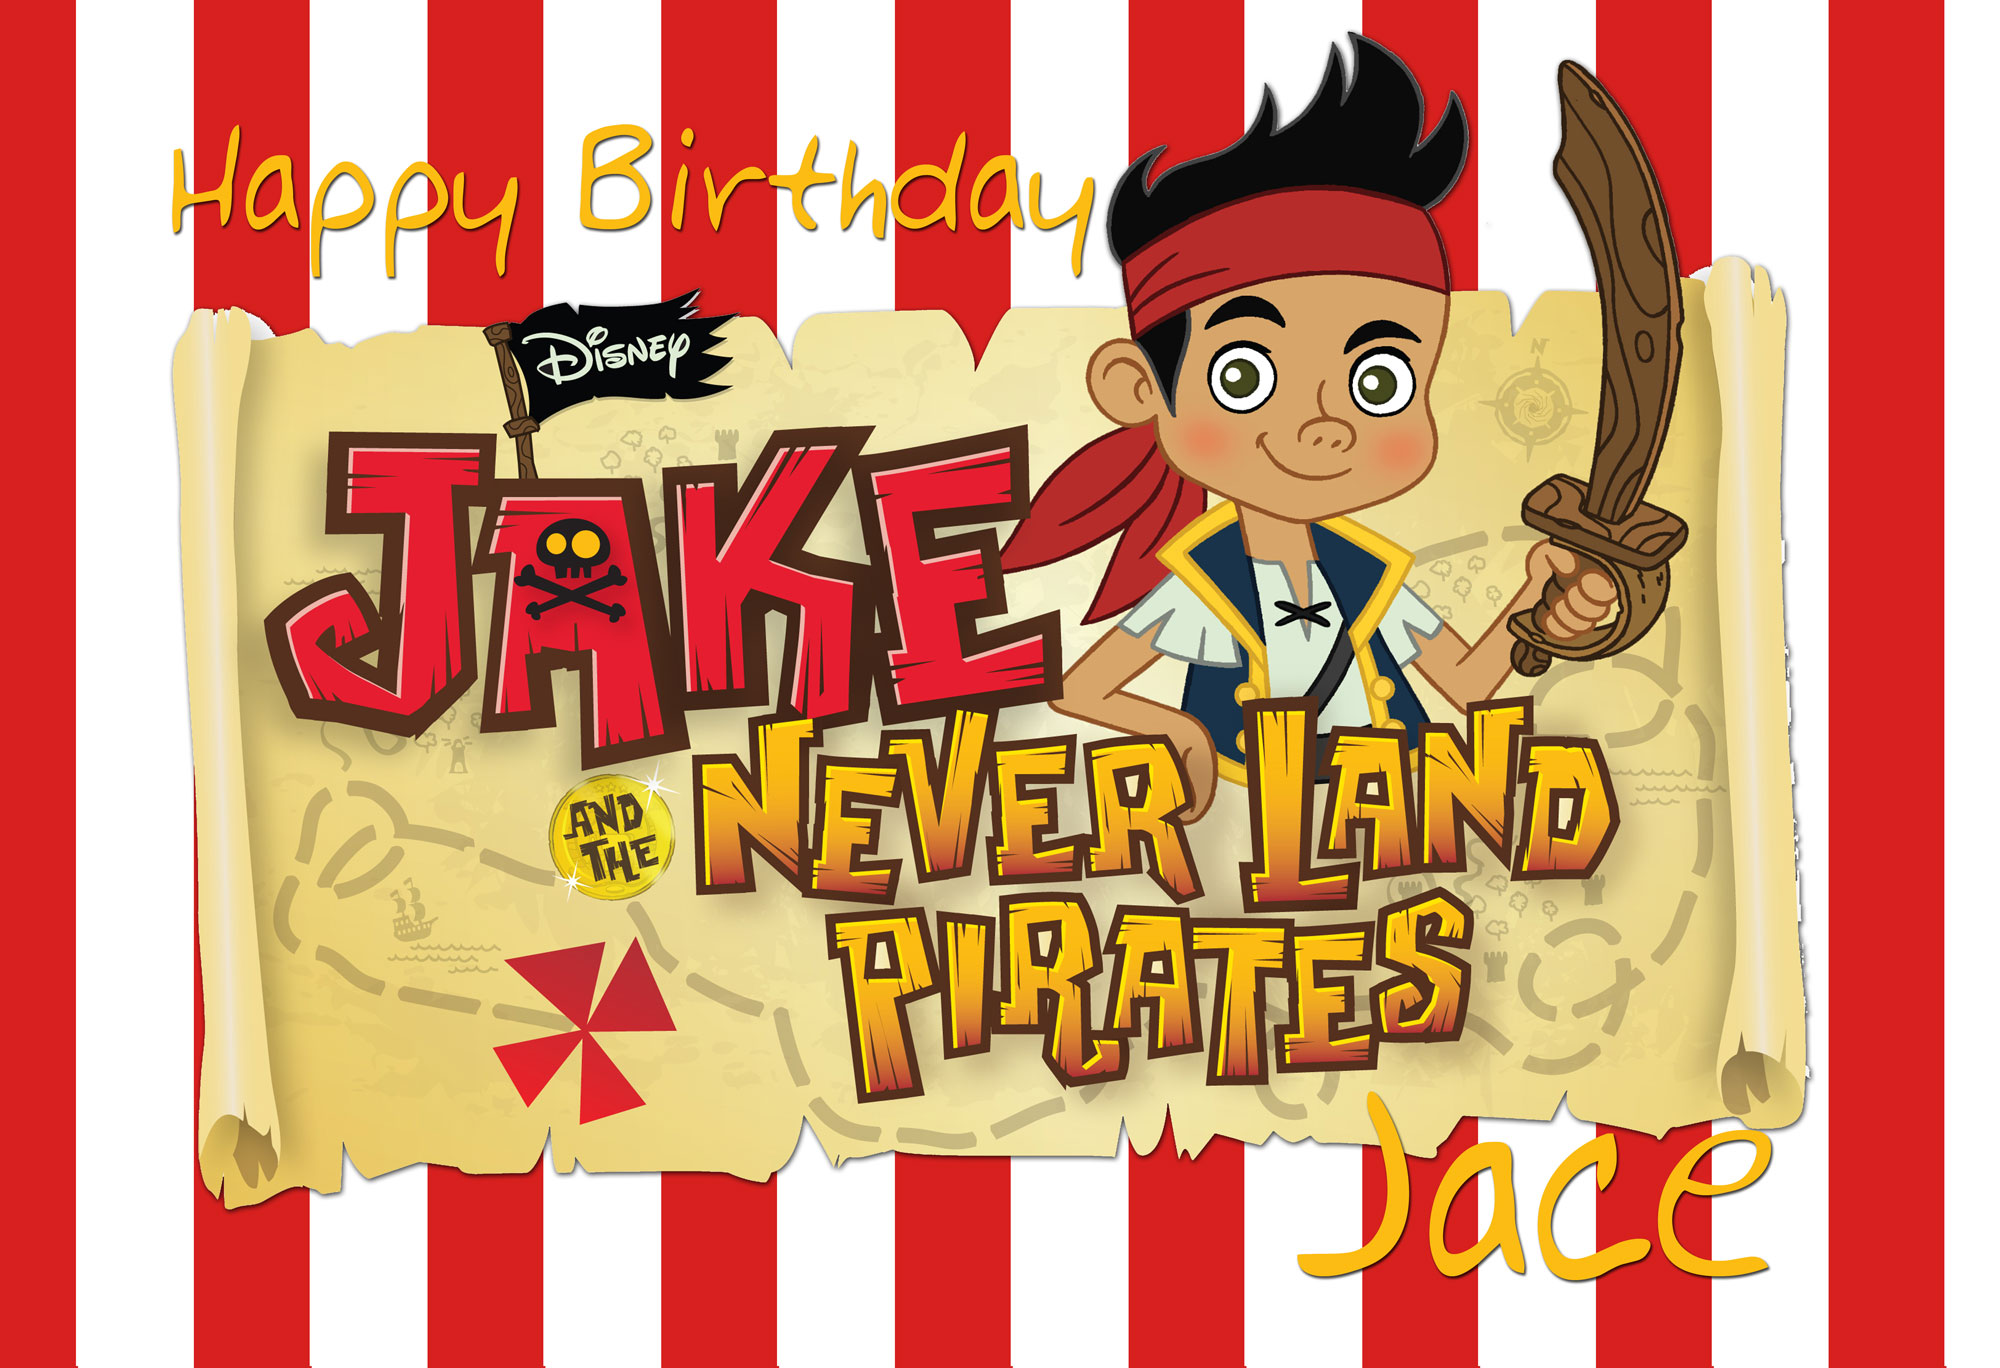 jake-and-the-neverland-pirates-poster.jpg